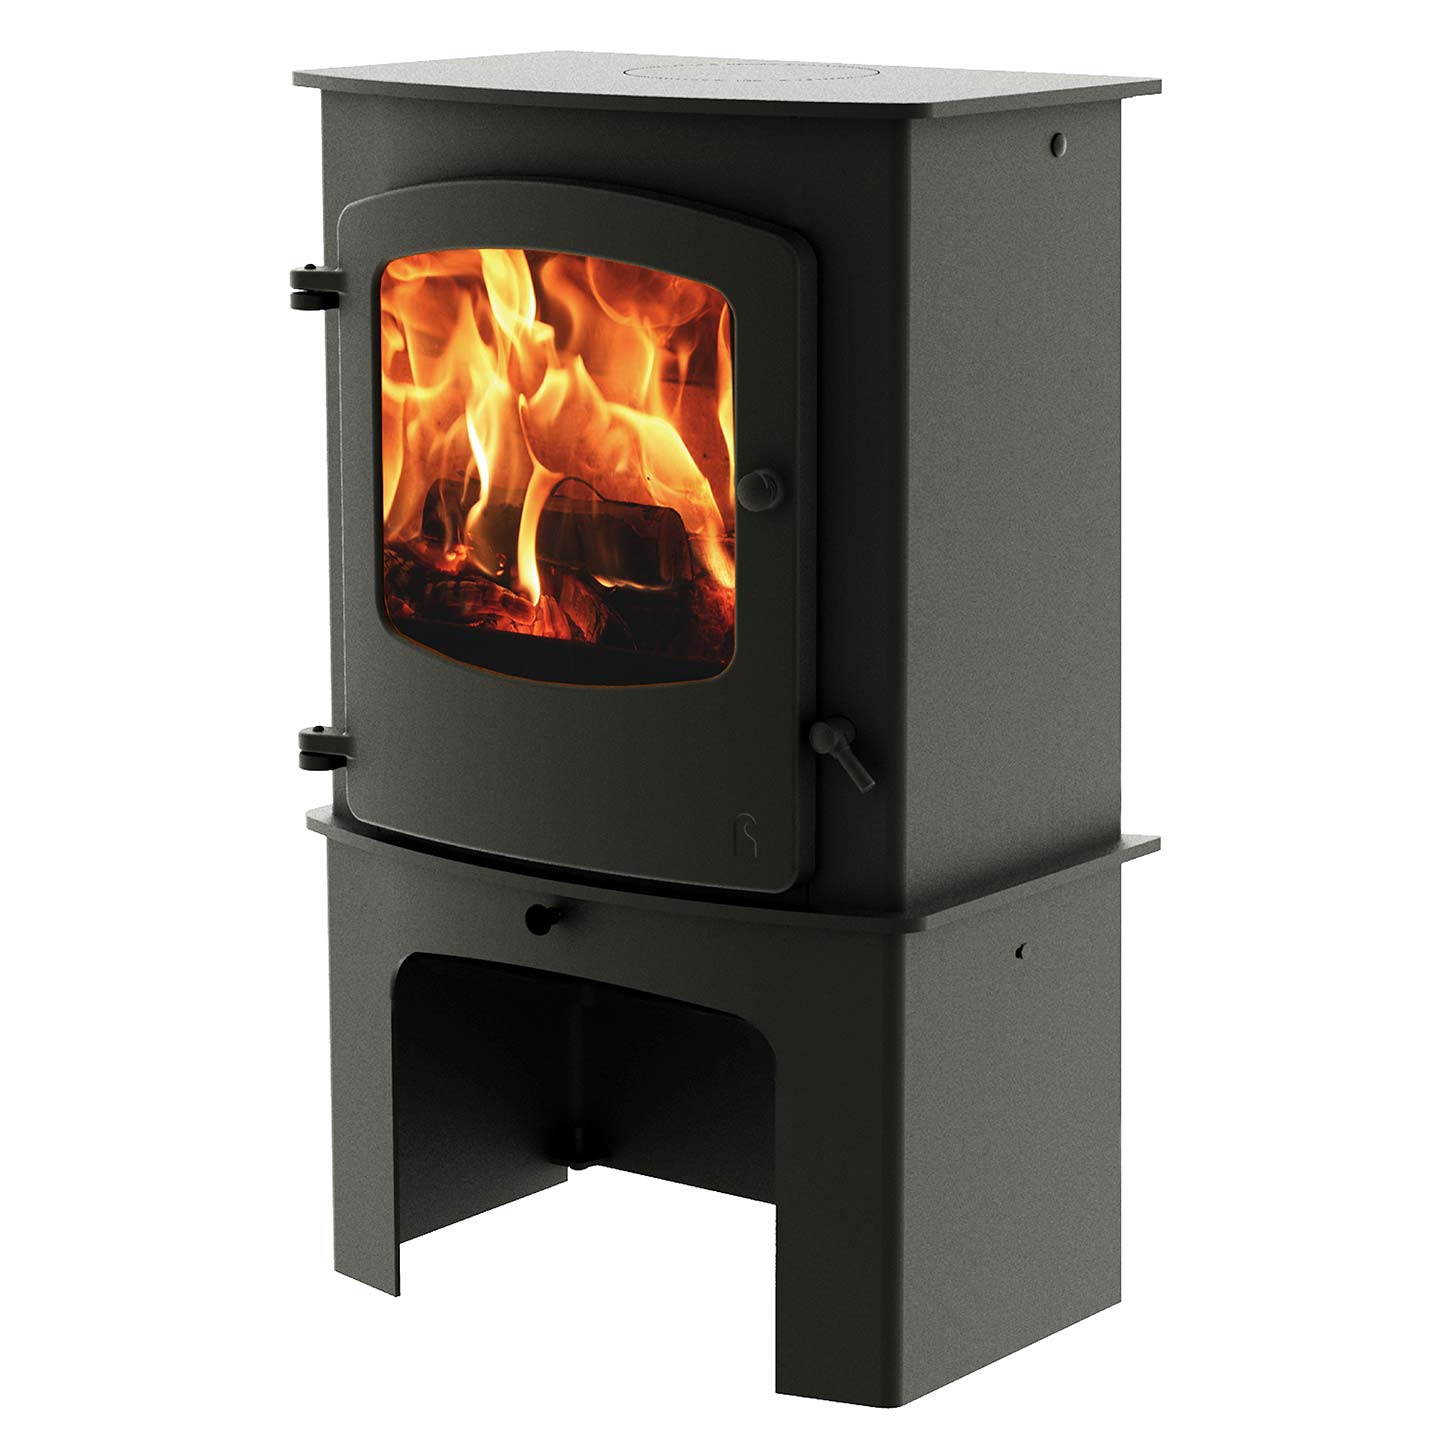 Charnwood Cove 2 Multi Fuel Stove The Stove Site